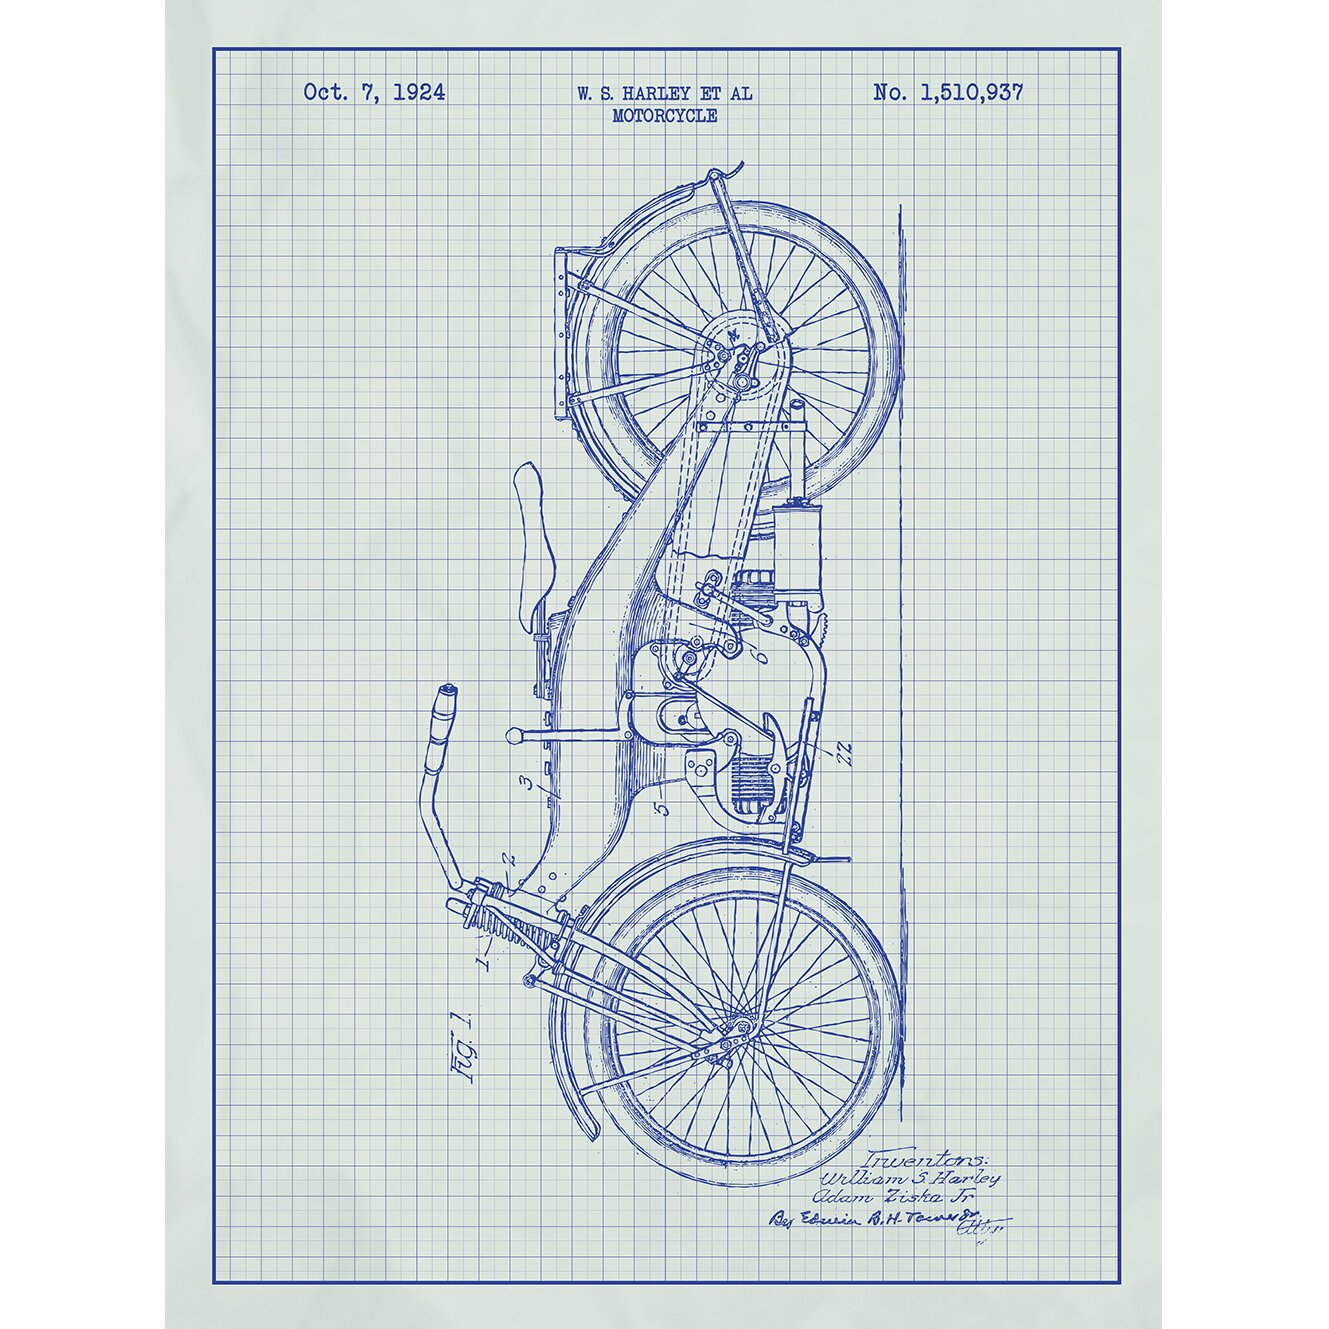 Harley color carpet tiles - Automobiles Et Al Harley Davidson Motorcycle 1924 Silk Screen Print Graphic Art In White